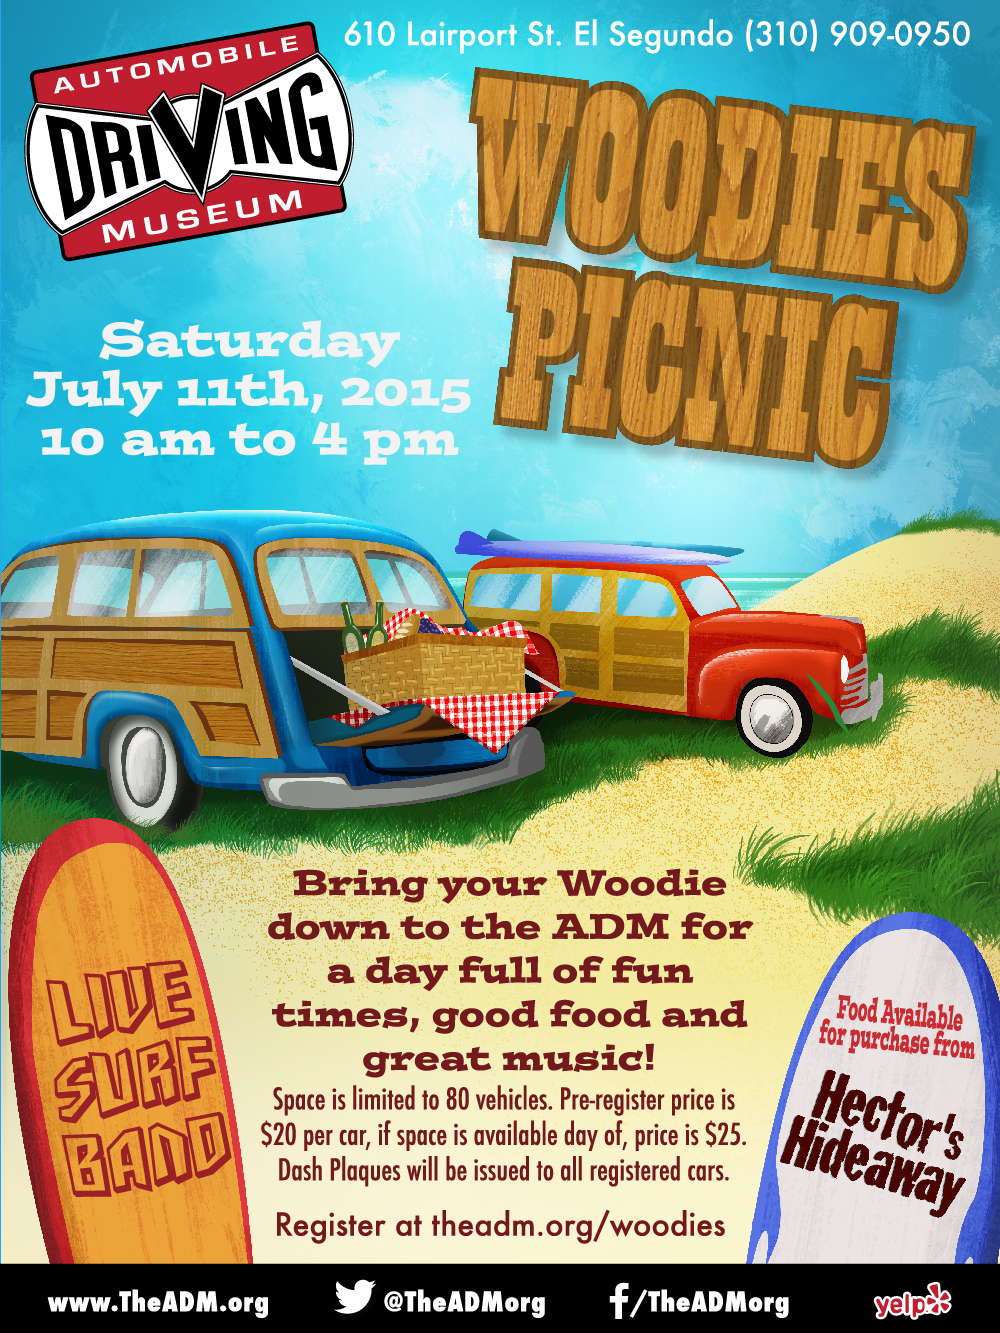 Woodies in the Park show coming soon